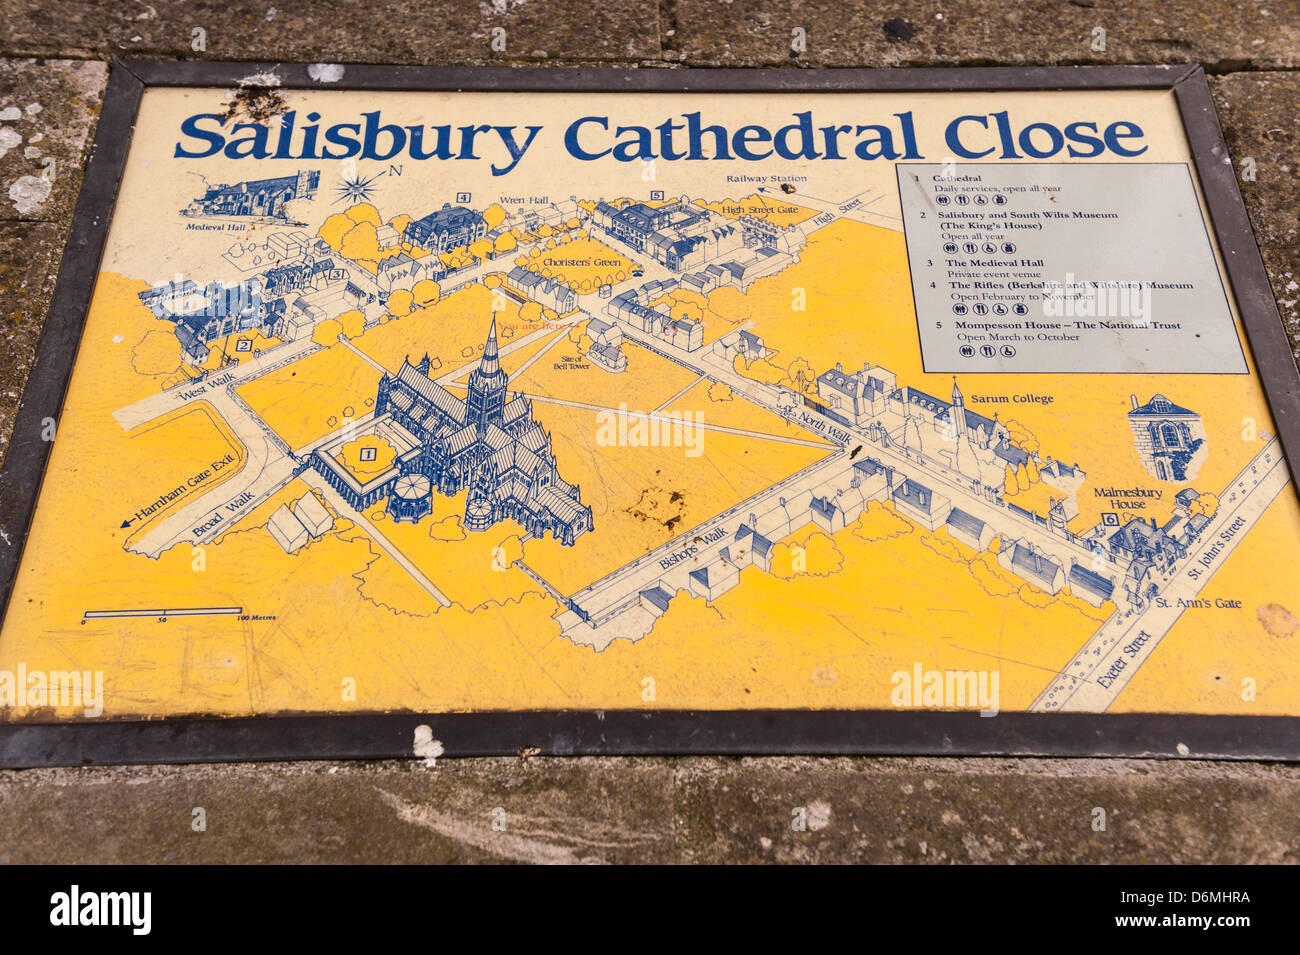 A Map Of Salisbury Cathedral In Salisbury Wiltshire England